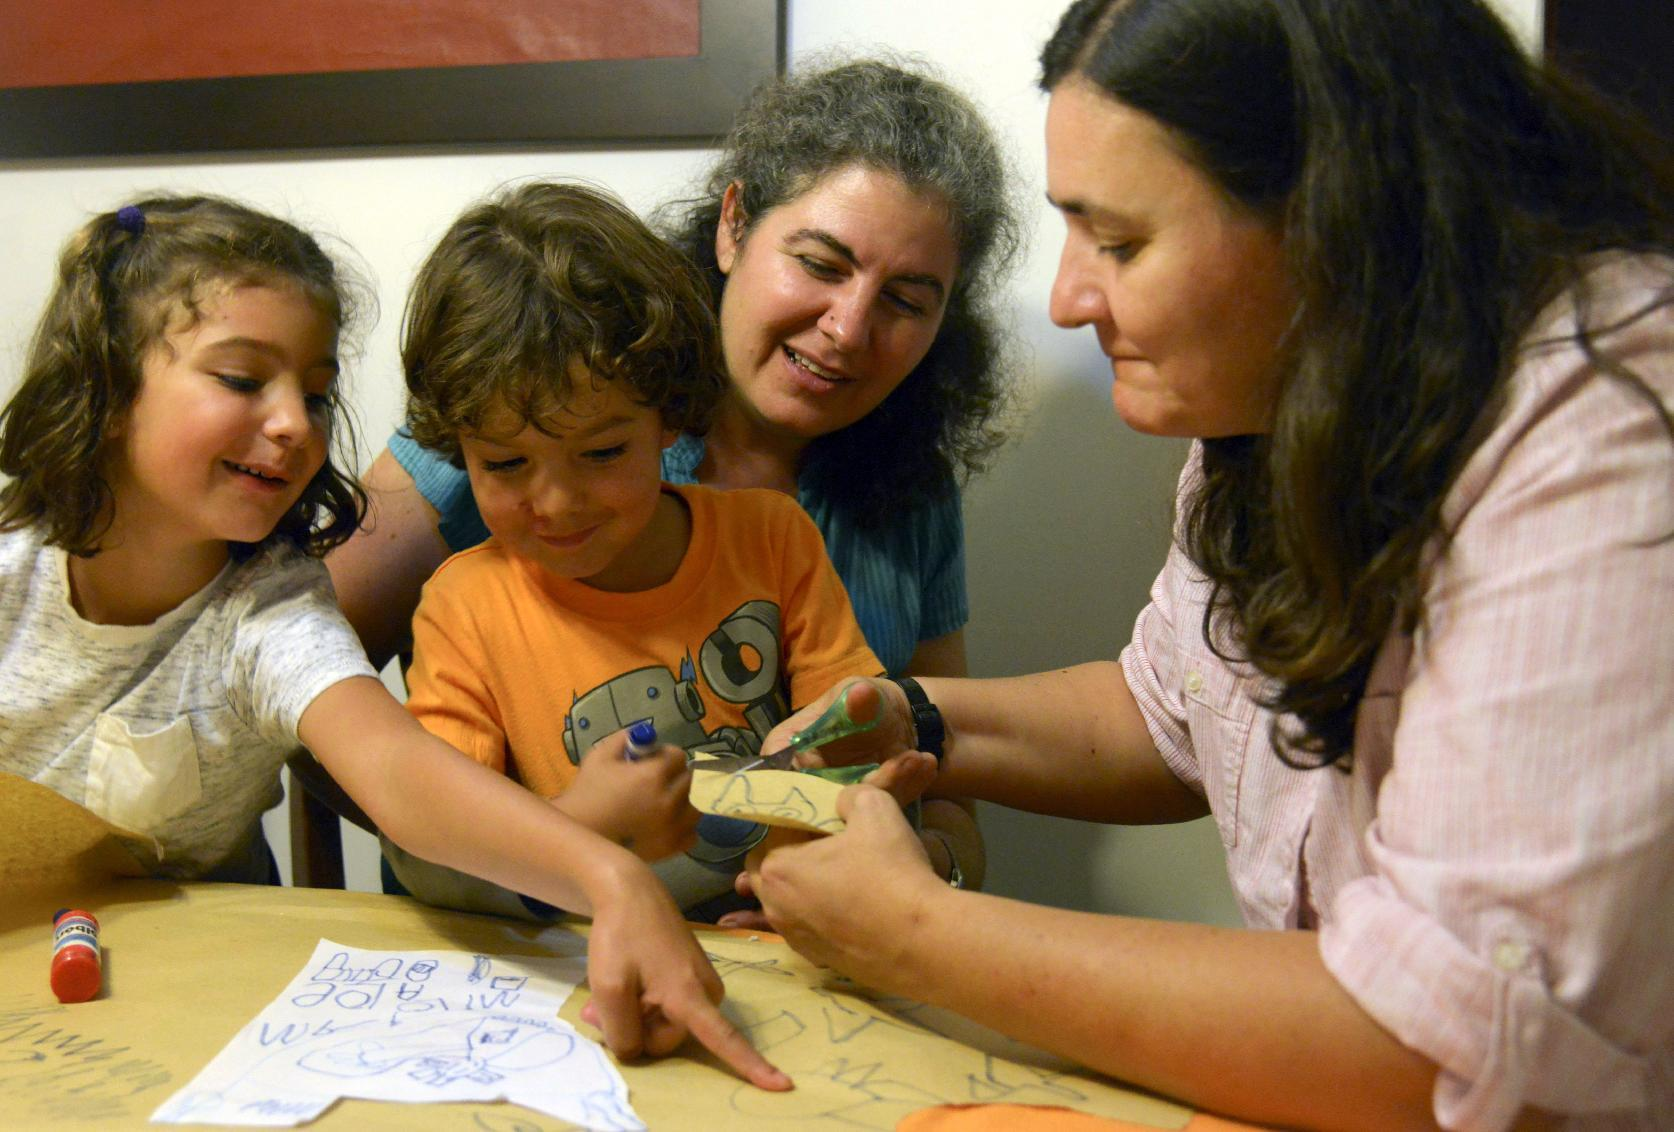 Colombian lesbian couple Ana Elisa Leiderman (2nd R) and Veronica Botero (R) watch as their daughter Raquel, 6, points at a sketch done by their son Ari, 4, both conceived by artificial insemination, at home in Medellin, Colombia, on August 26, 2014 (AFP Photo/Raul Arboleda)